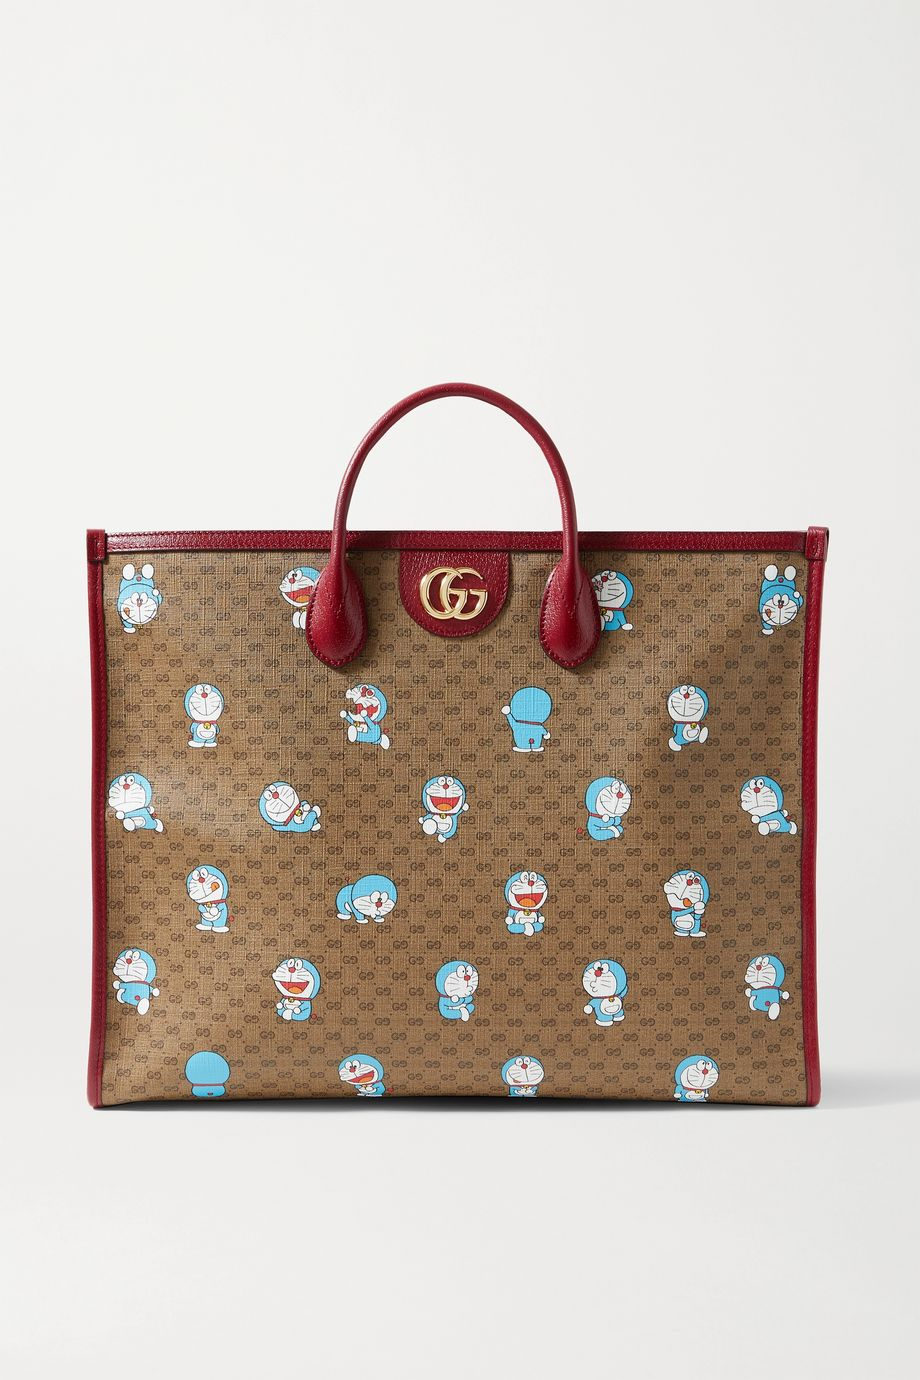 Gucci + Doraemon textured leather-trimmed printed coated-canvas tote